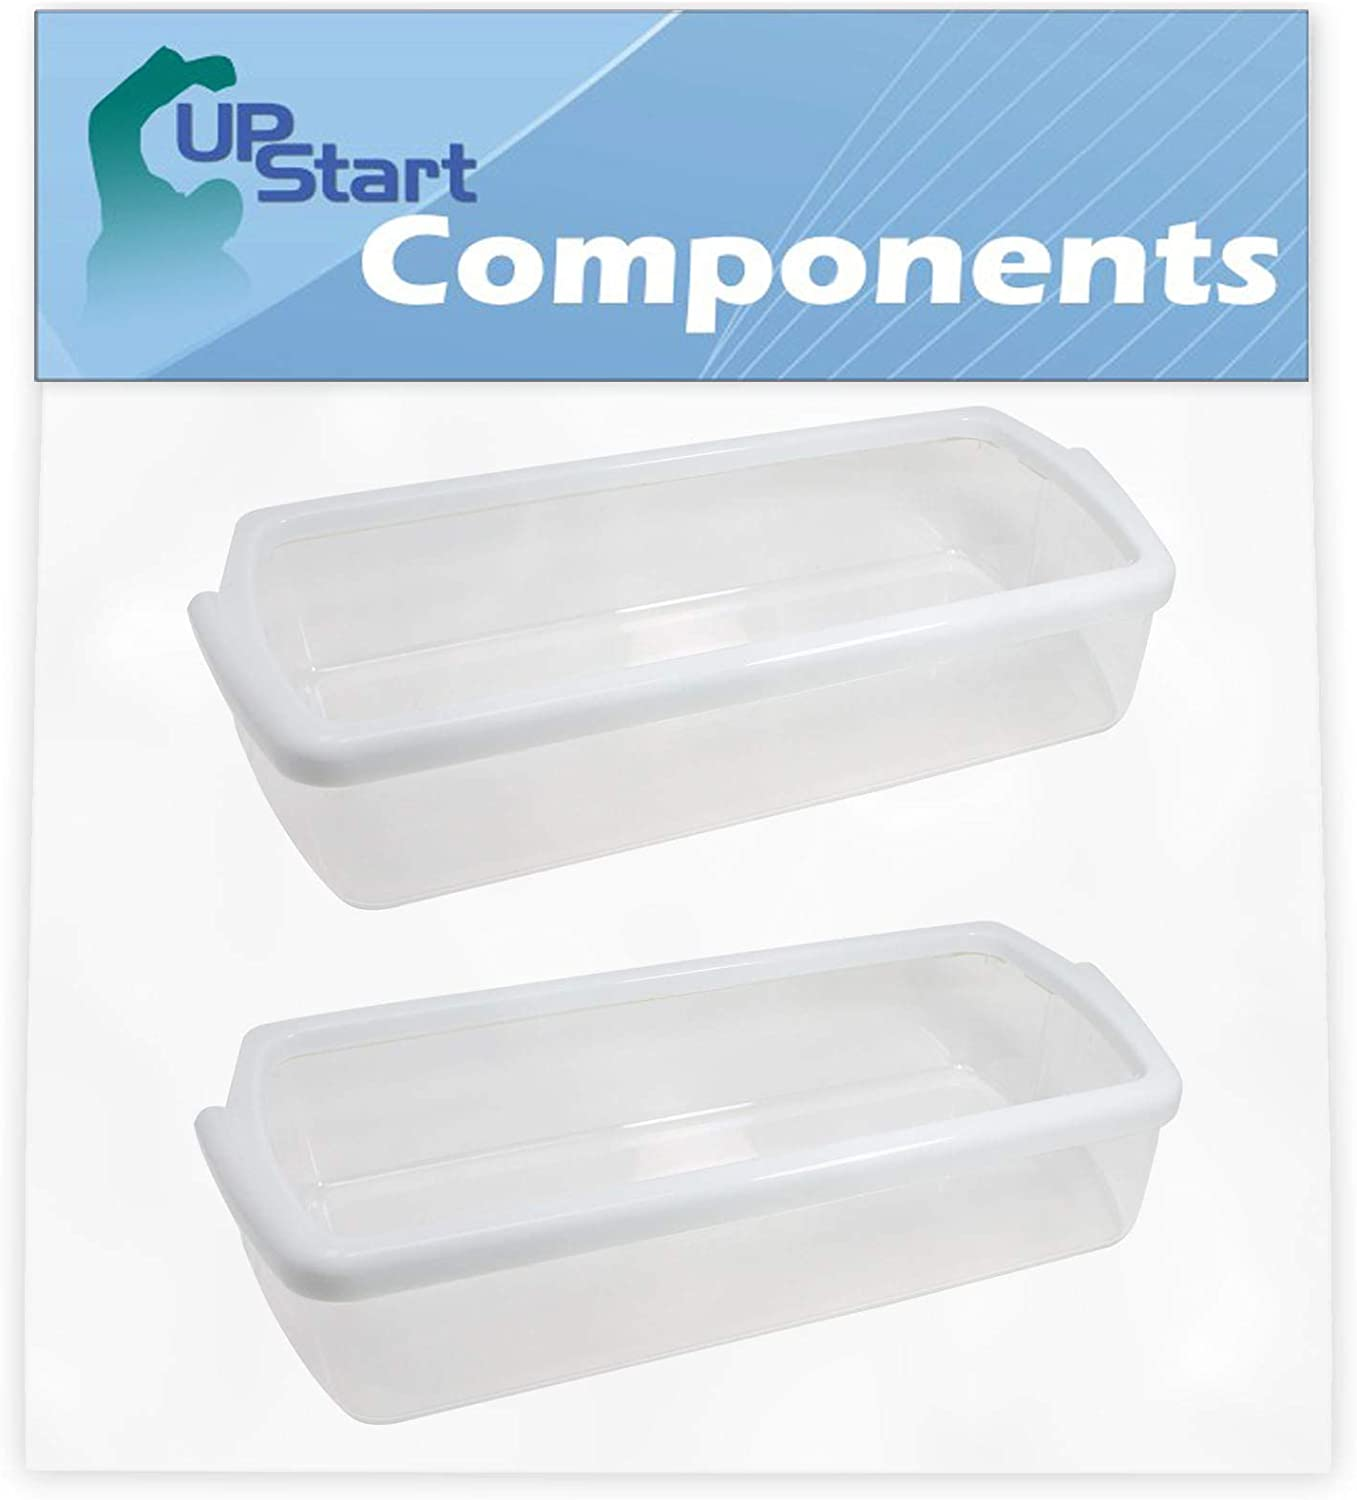 2-Pack W10321304 Refrigerator Door Bin Replacement for Kenmore/Sears 106.51102110 Refrigerator - Compatible with WPW10321304 Door Bin